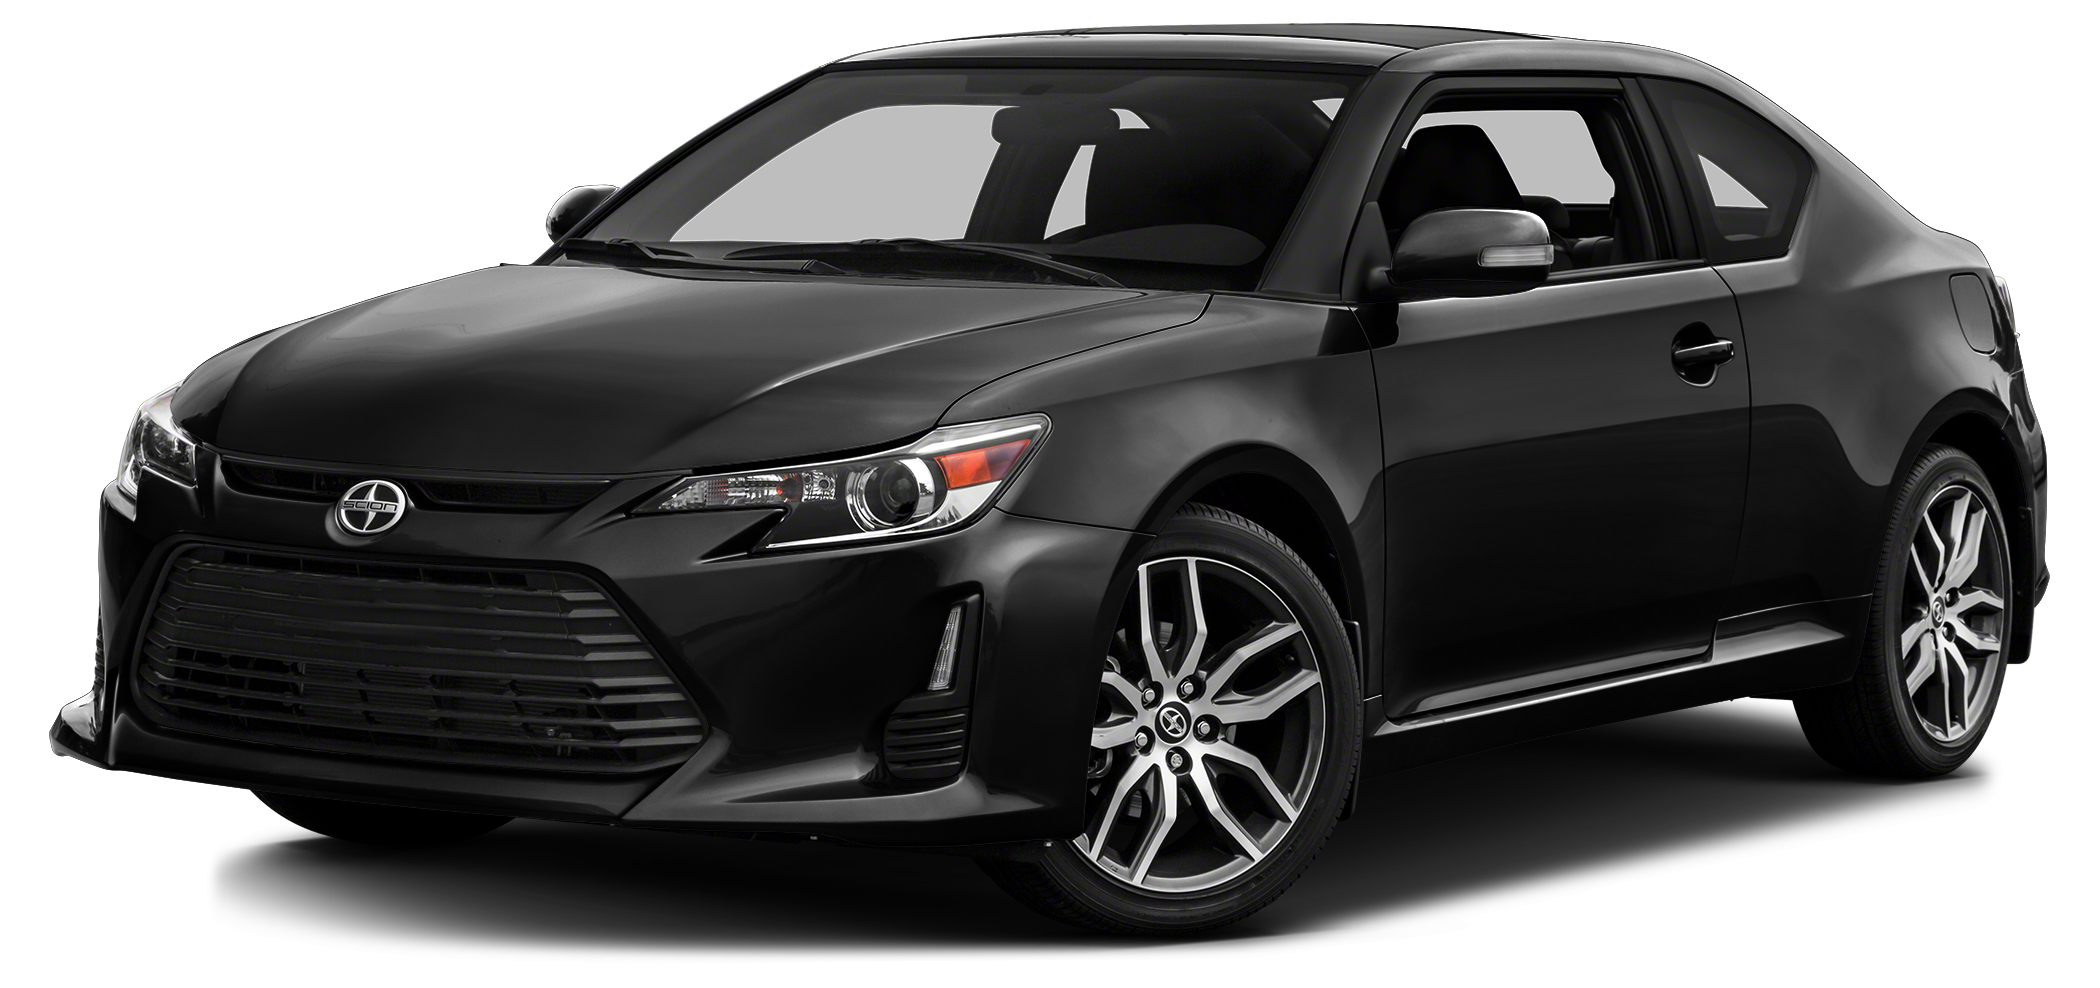 2016 Scion tC Base Introducing the 2016 Scion tC This car is a truly winning combination a quick